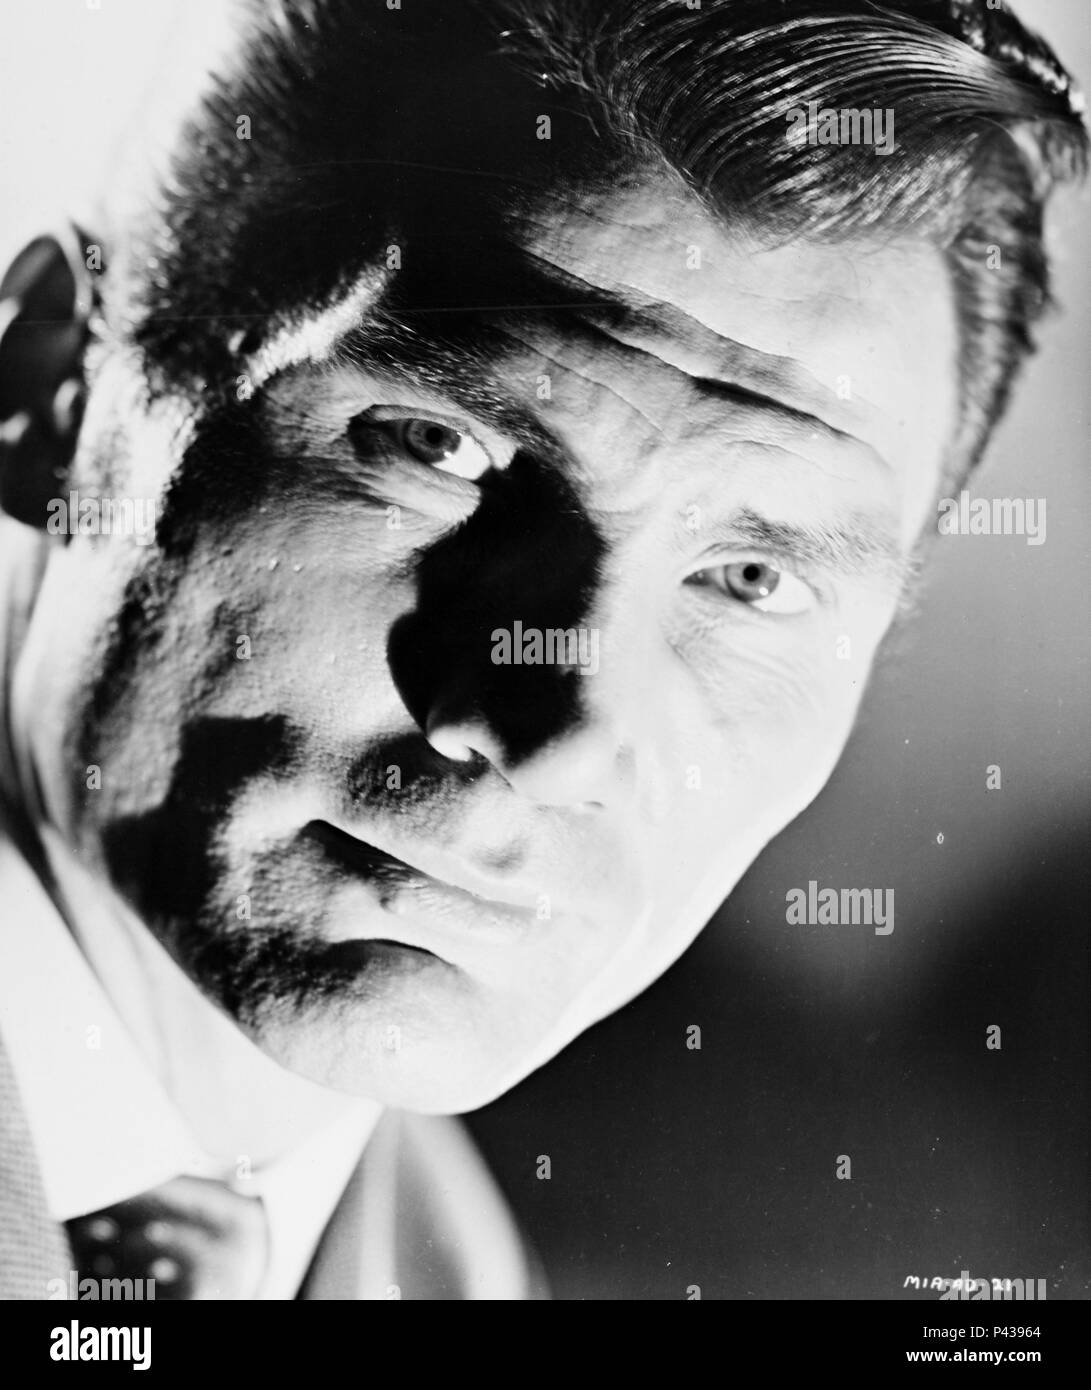 Jack Palance Black And White Stock Photos Images Page 2